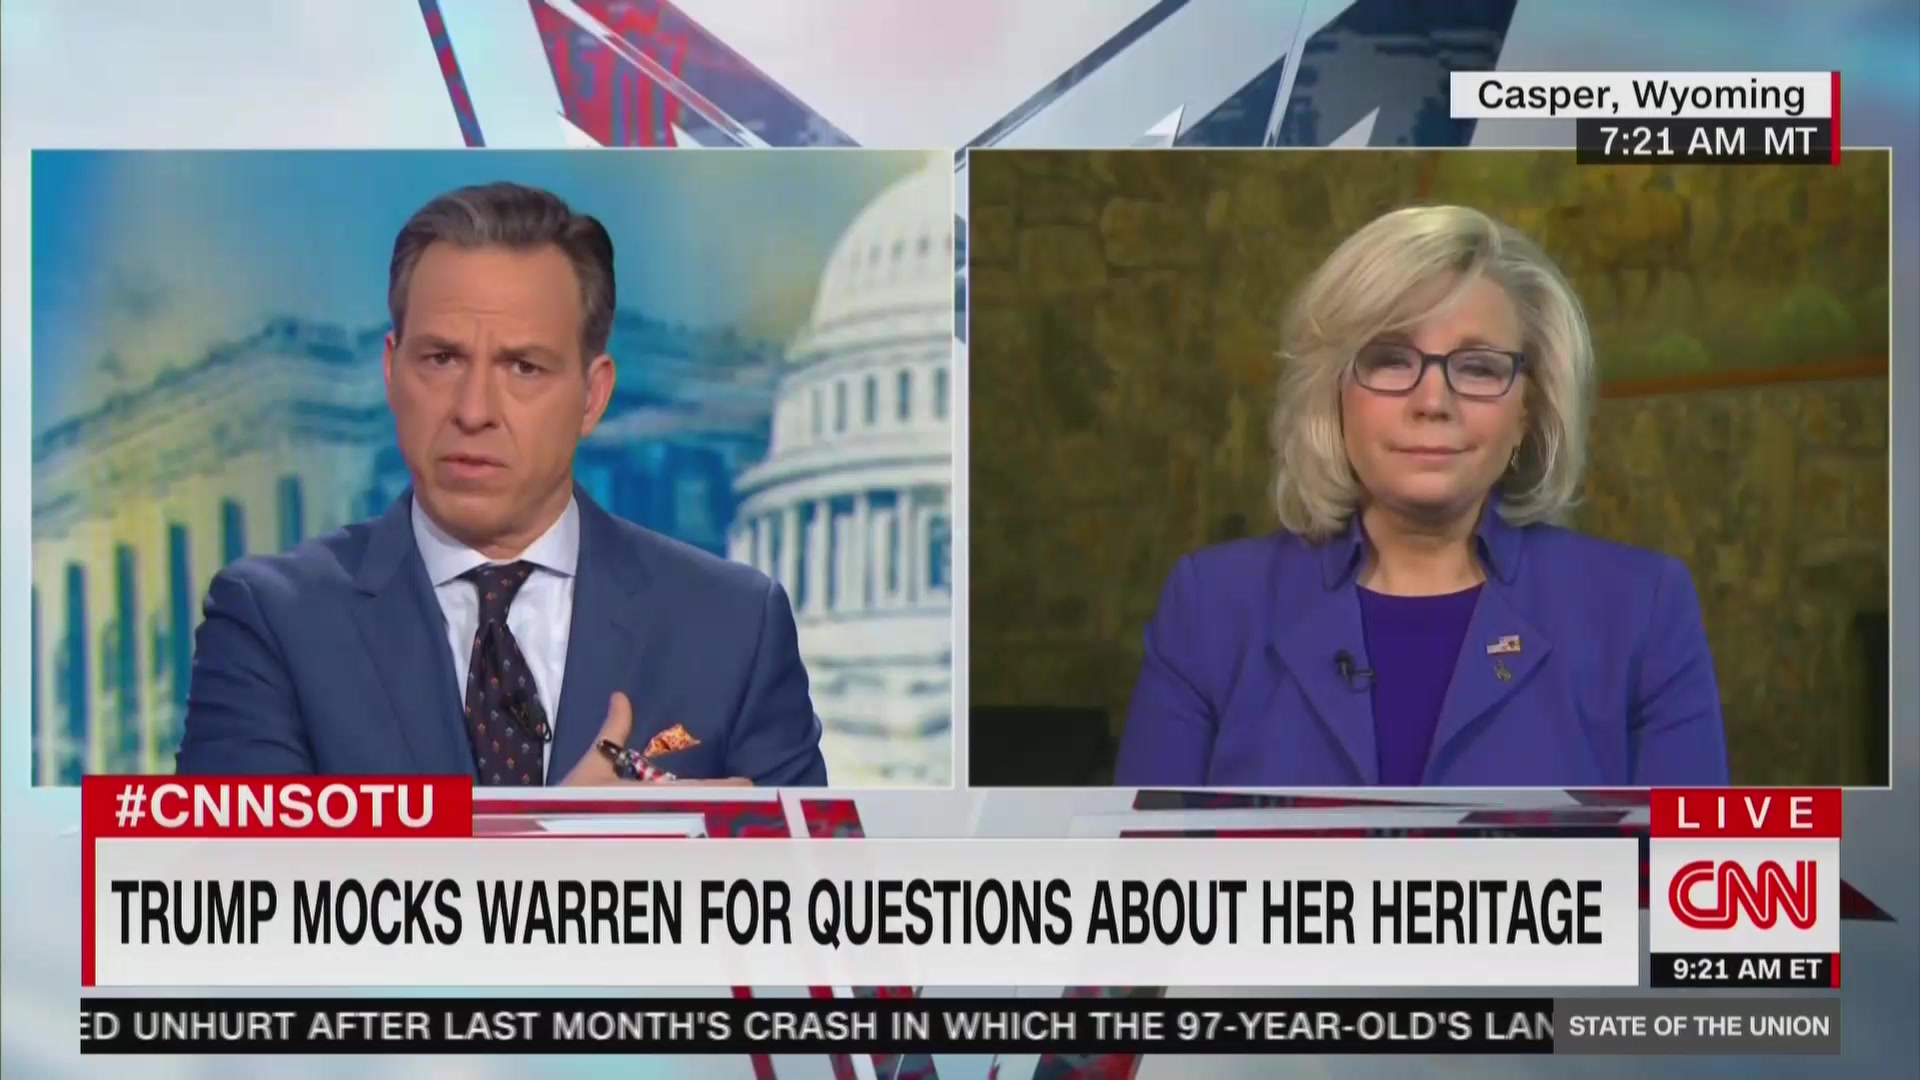 Liz Cheney Ignores Trump's Native American Genocide Joke, Instead Attacks Elizabeth Warren